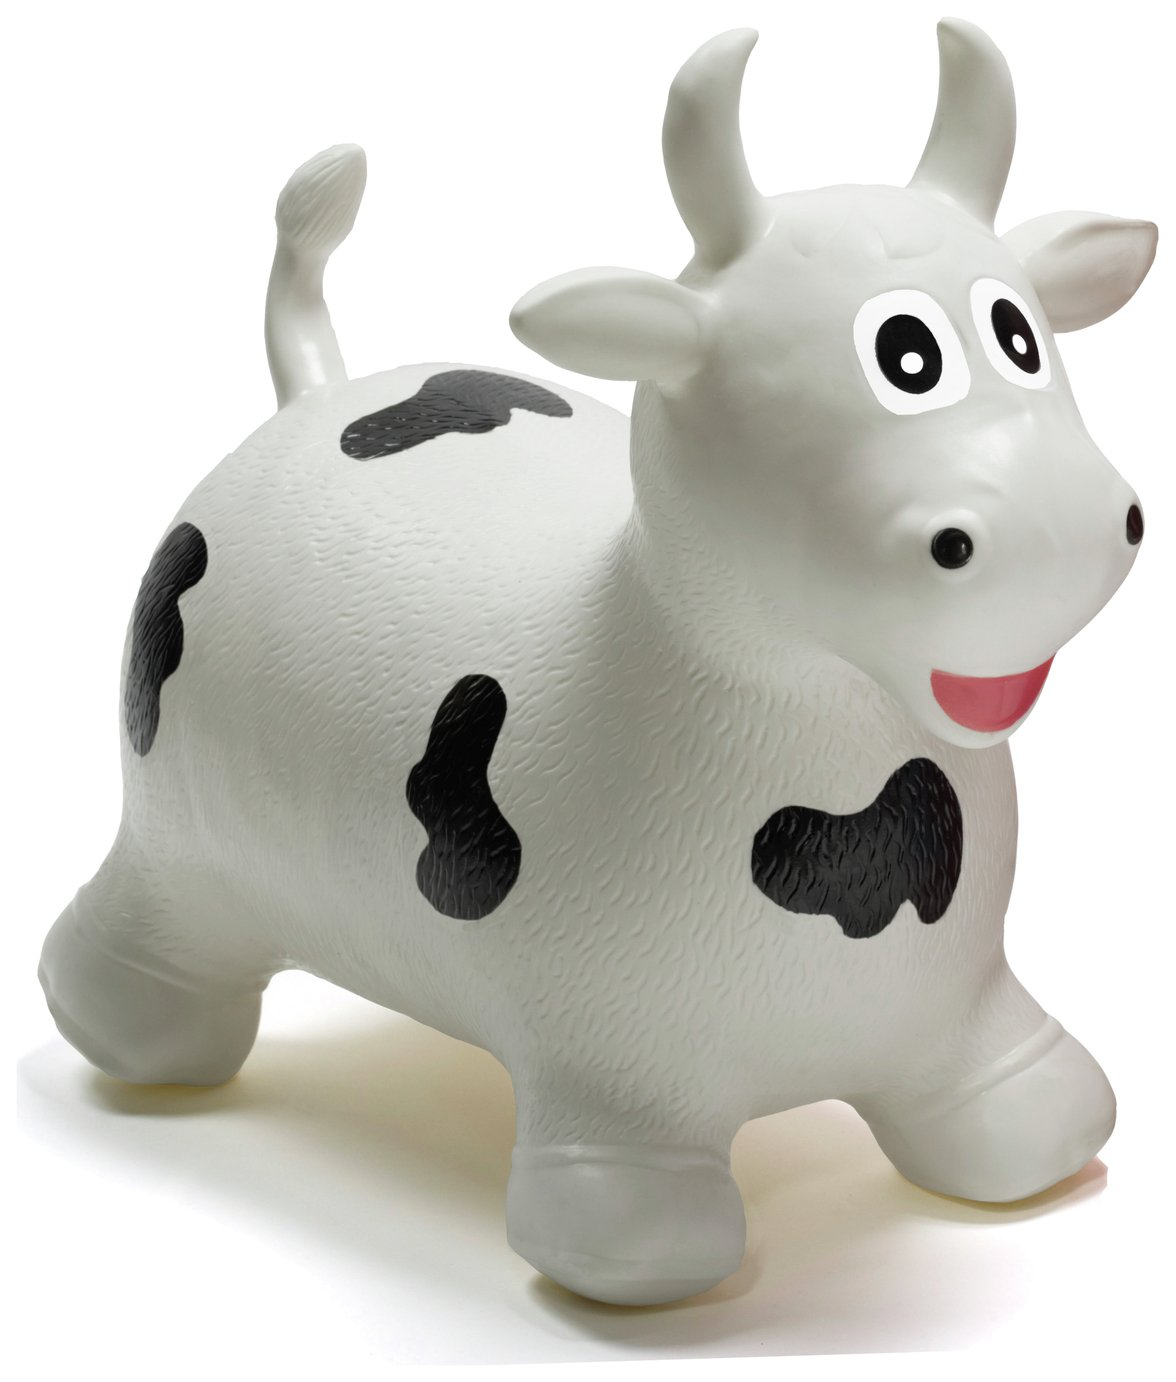 Image of HappyHopperz Inflatable Bouncer Bull - White.